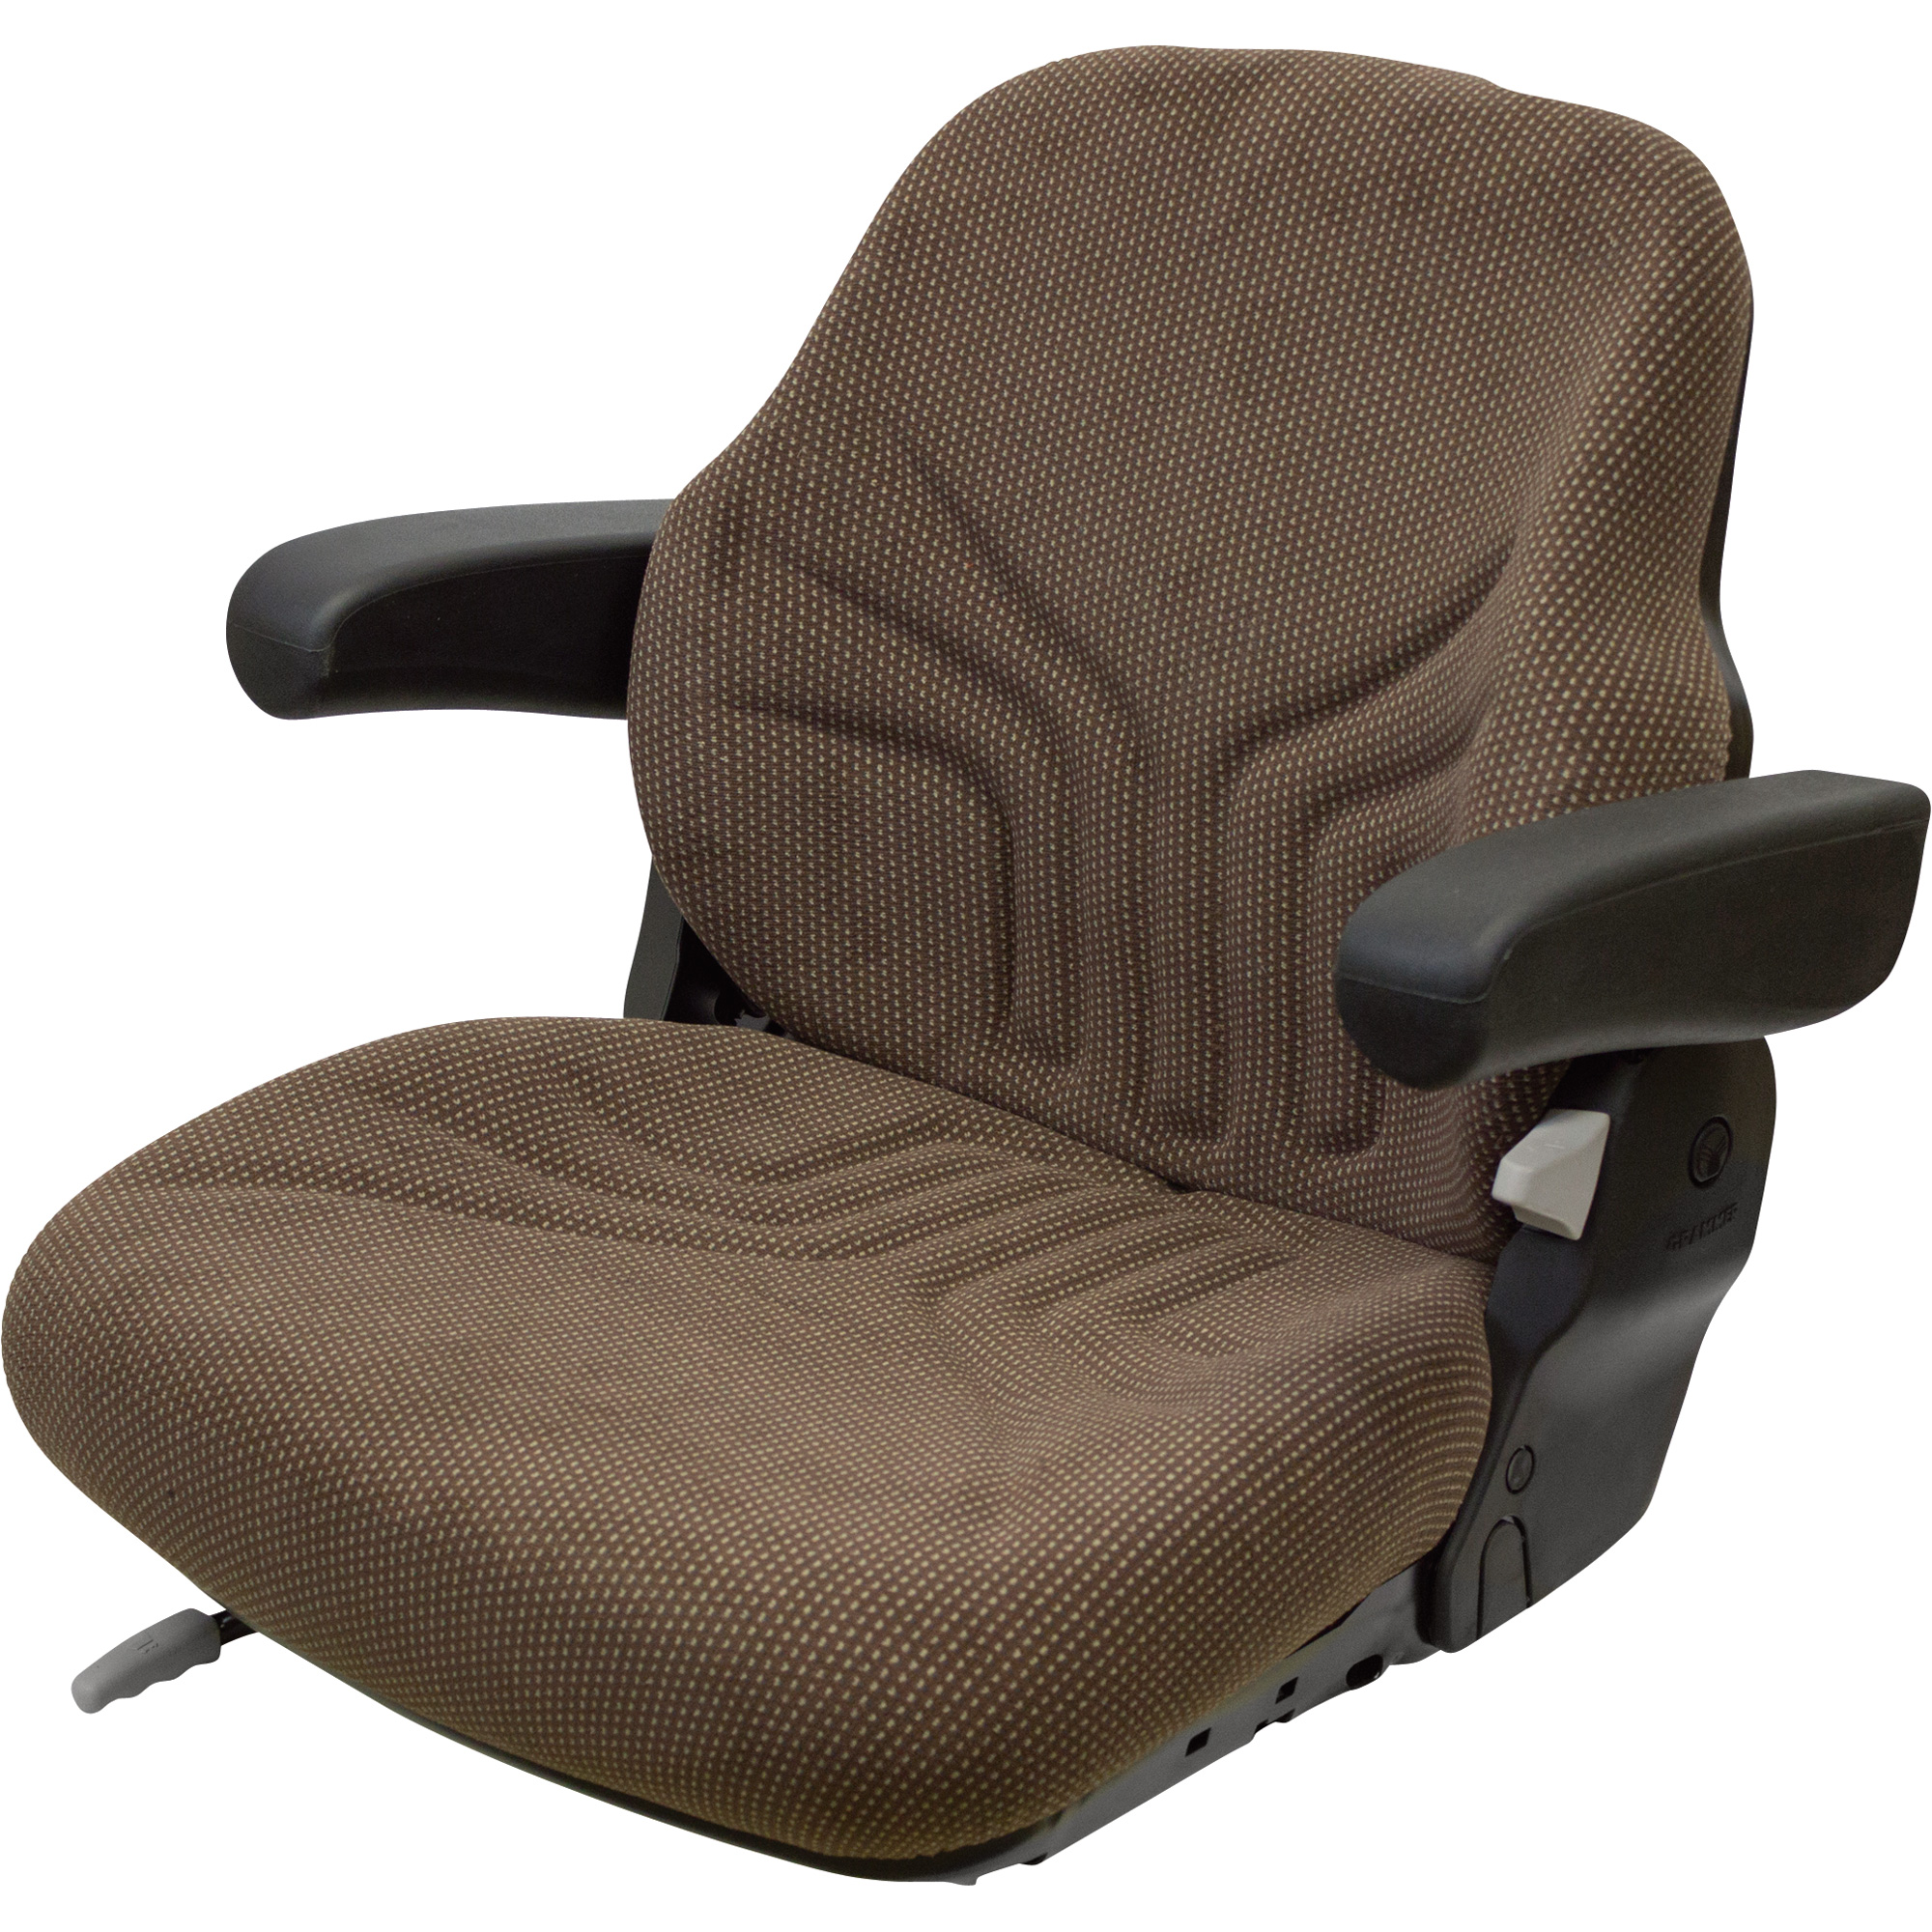 K And M Tractor Seats : K m uni pro fabric tractor seat with fold up armrests